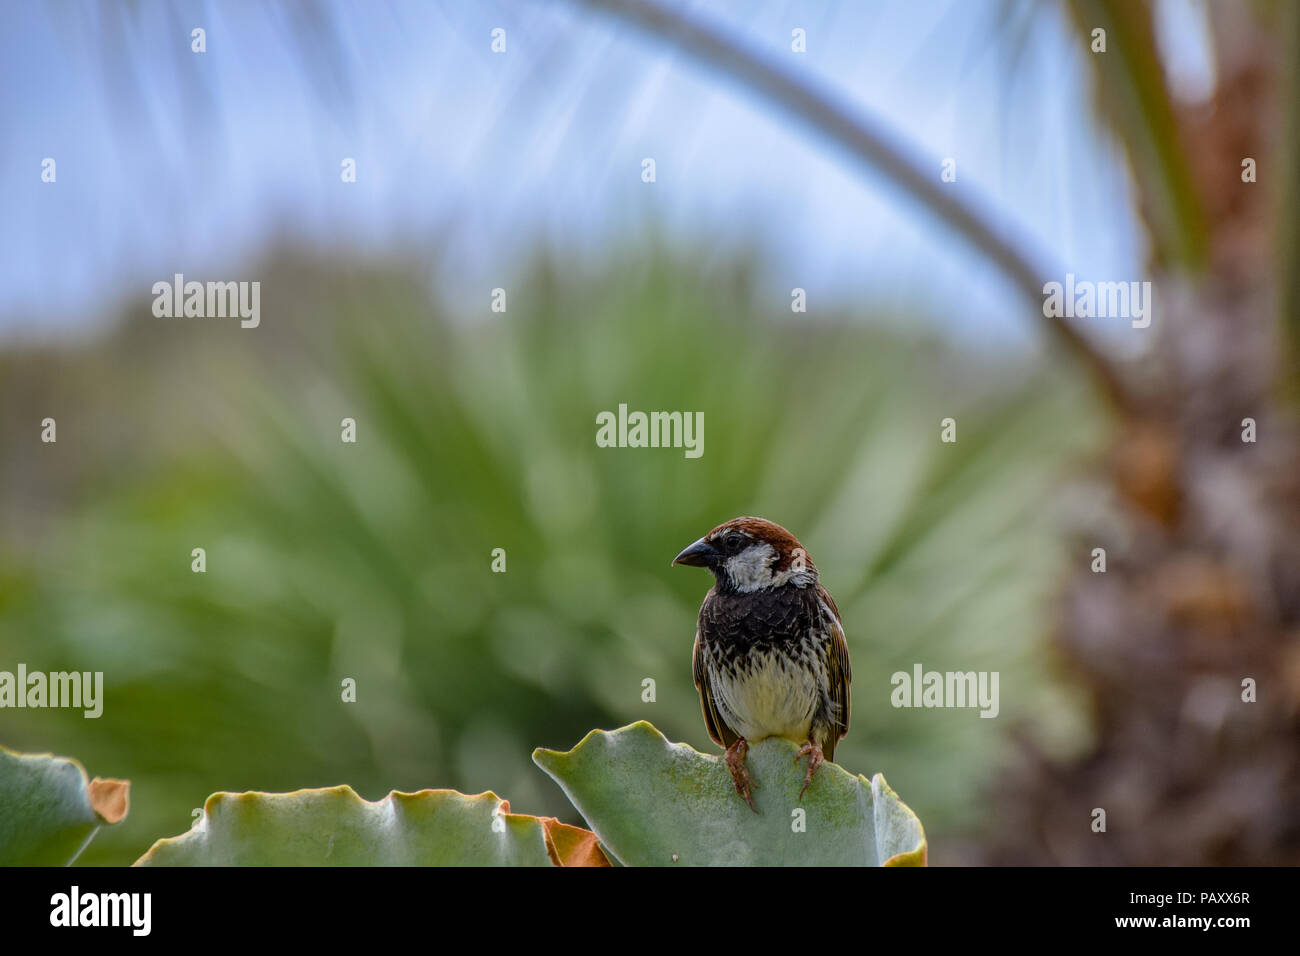 Male spanish sparrow (Passer hispaniolensis) perched on the leaf of a green succulent in Porto Santo, Portugal - Stock Image